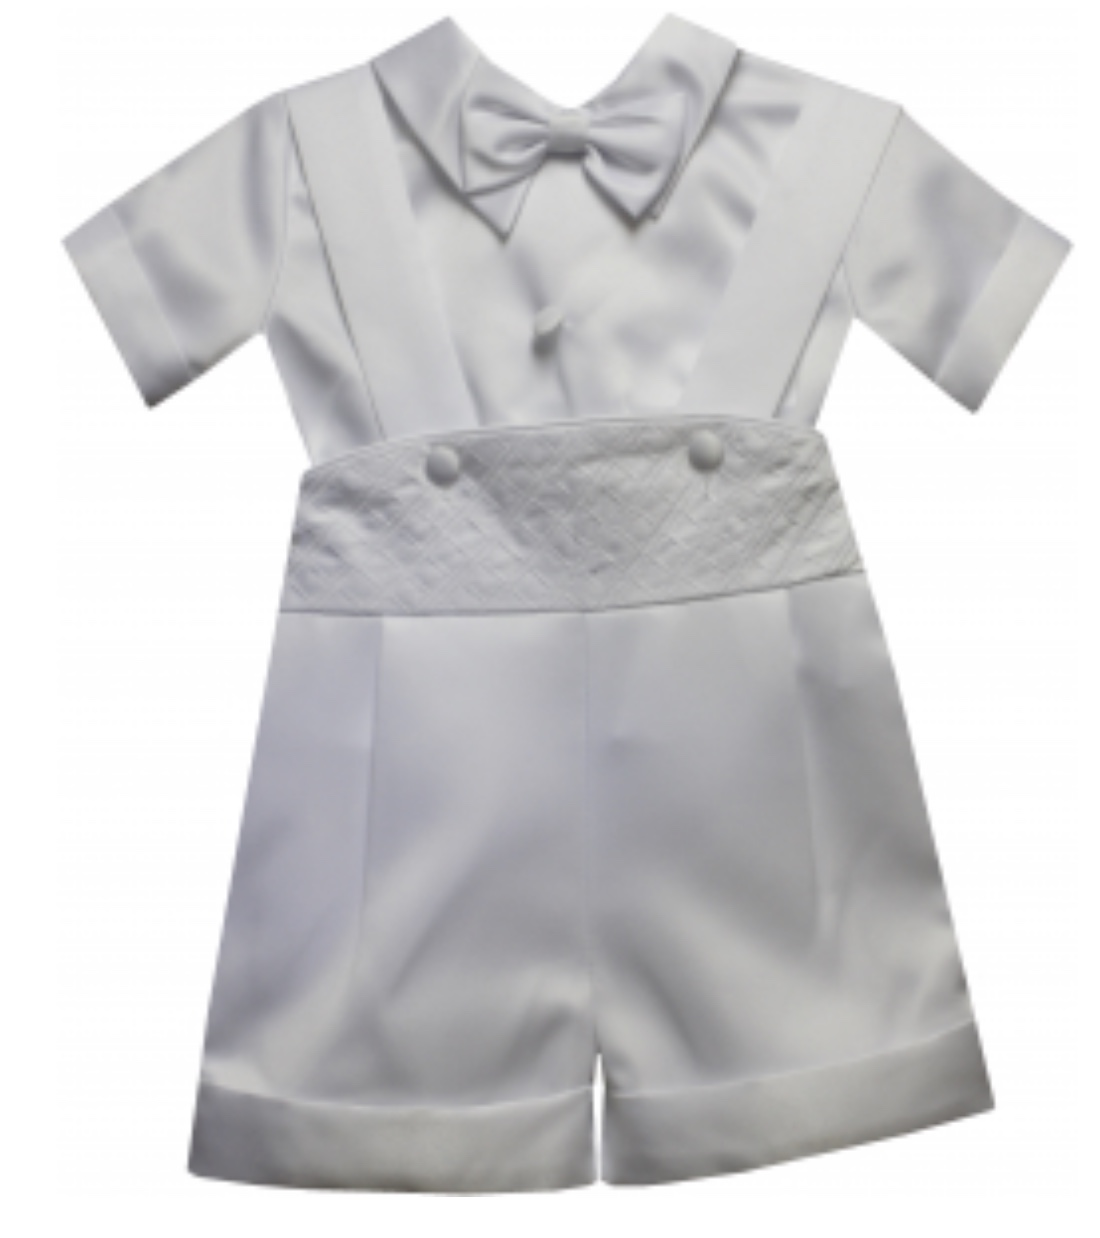 PRECIOUS ANGELS BOYS SHORT CHRISTENING SUIT WITH HAT